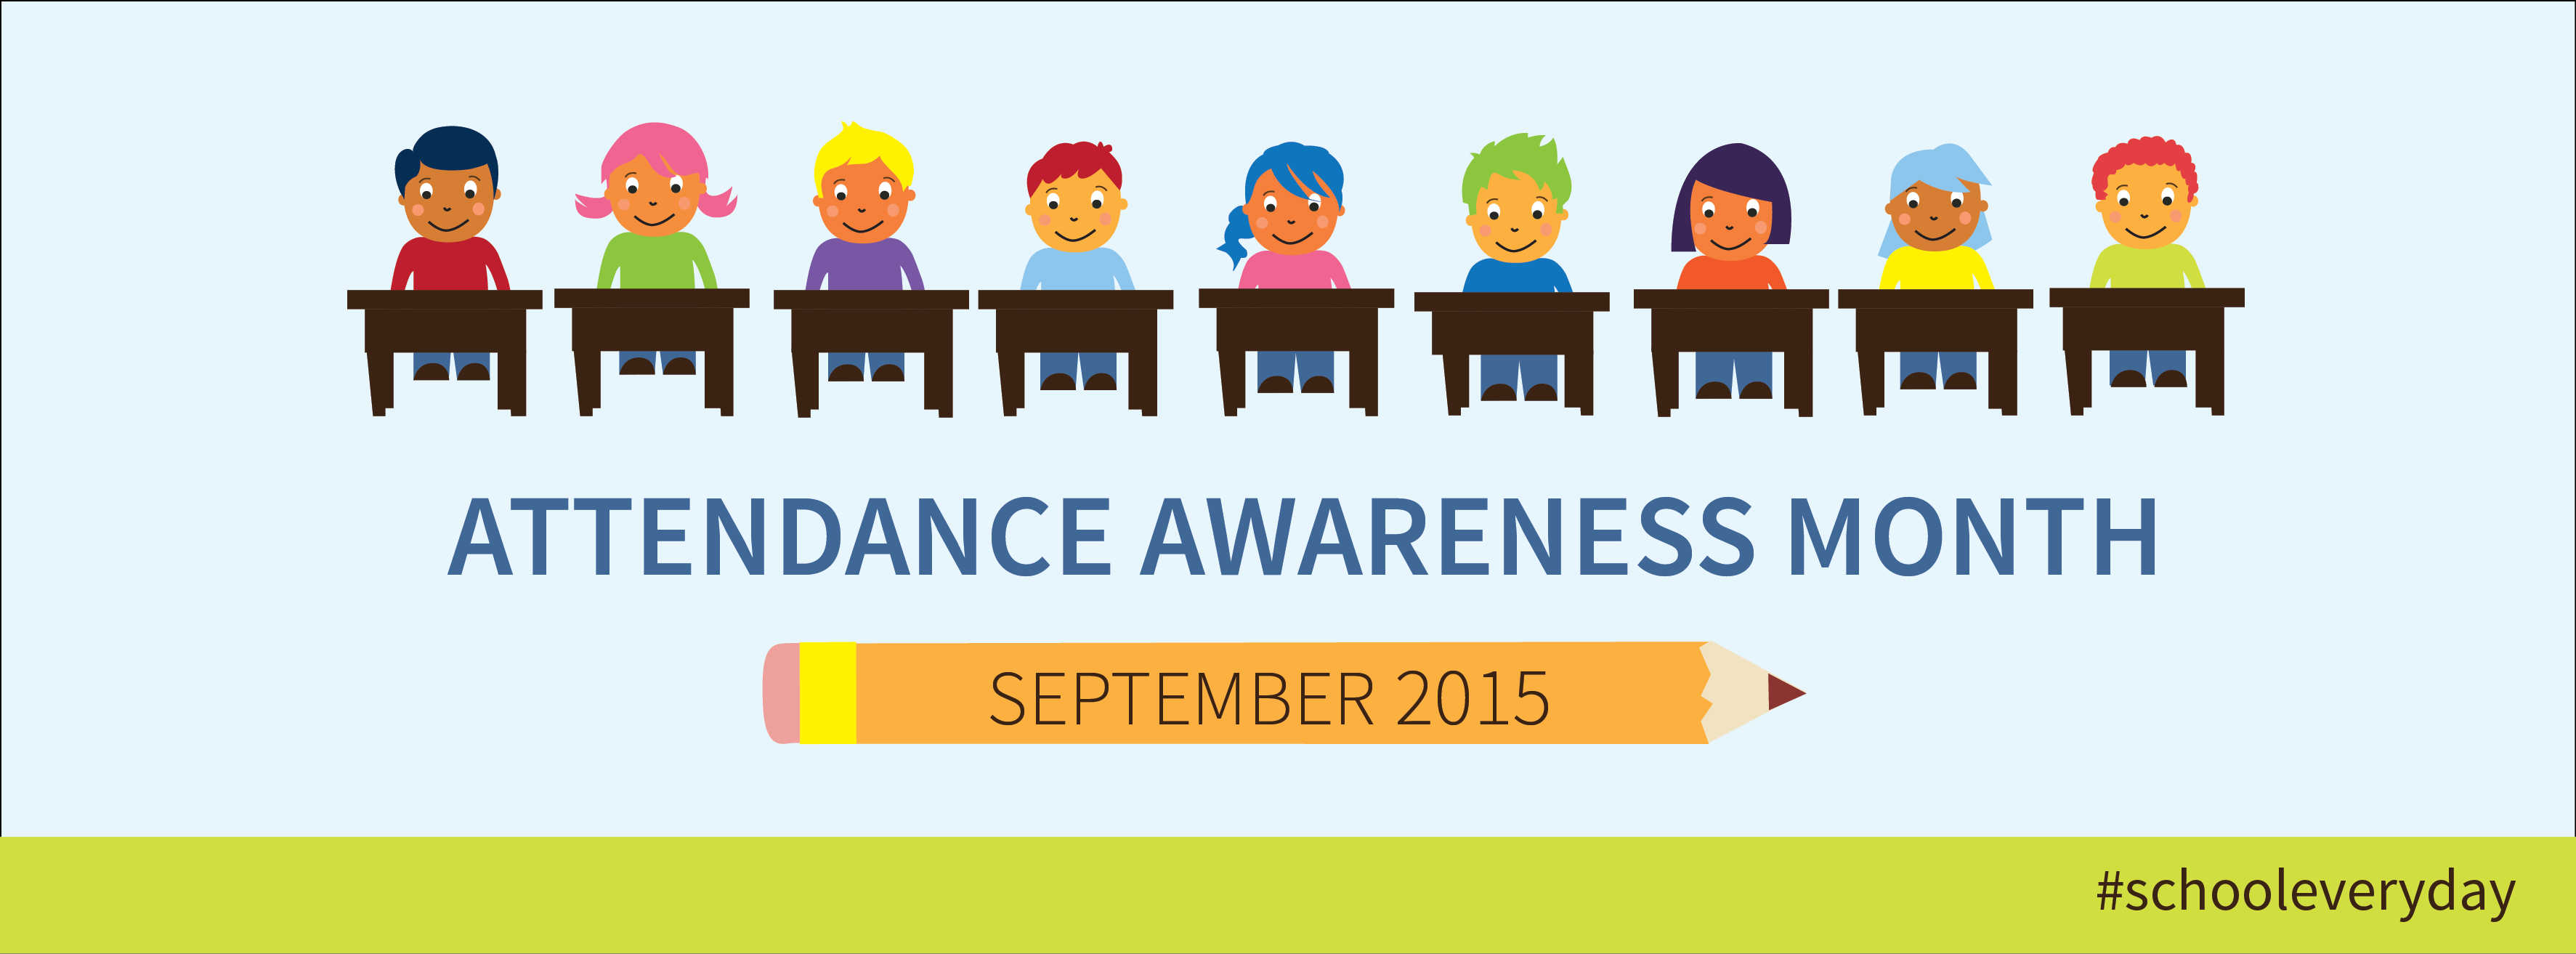 Social Media Tools - Attendance Awareness Month